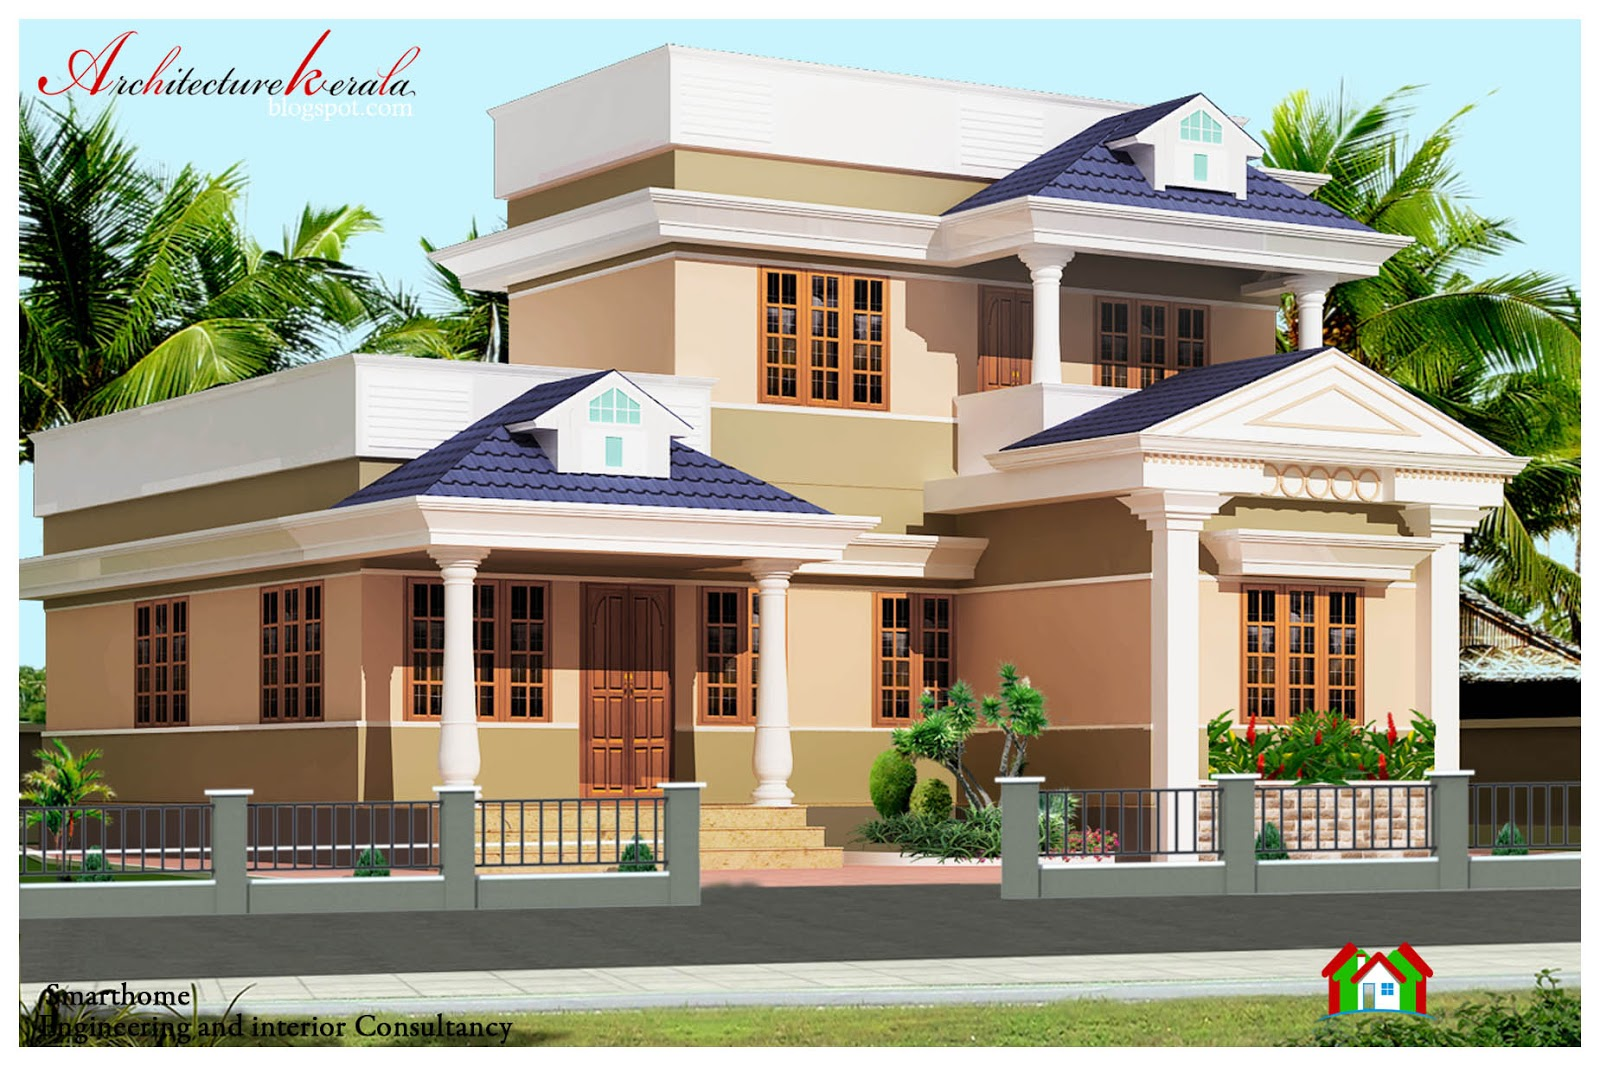 Architecture kerala 1000 sq ft kerala style house plan for Kerala home plan and elevation 1000 sq ft